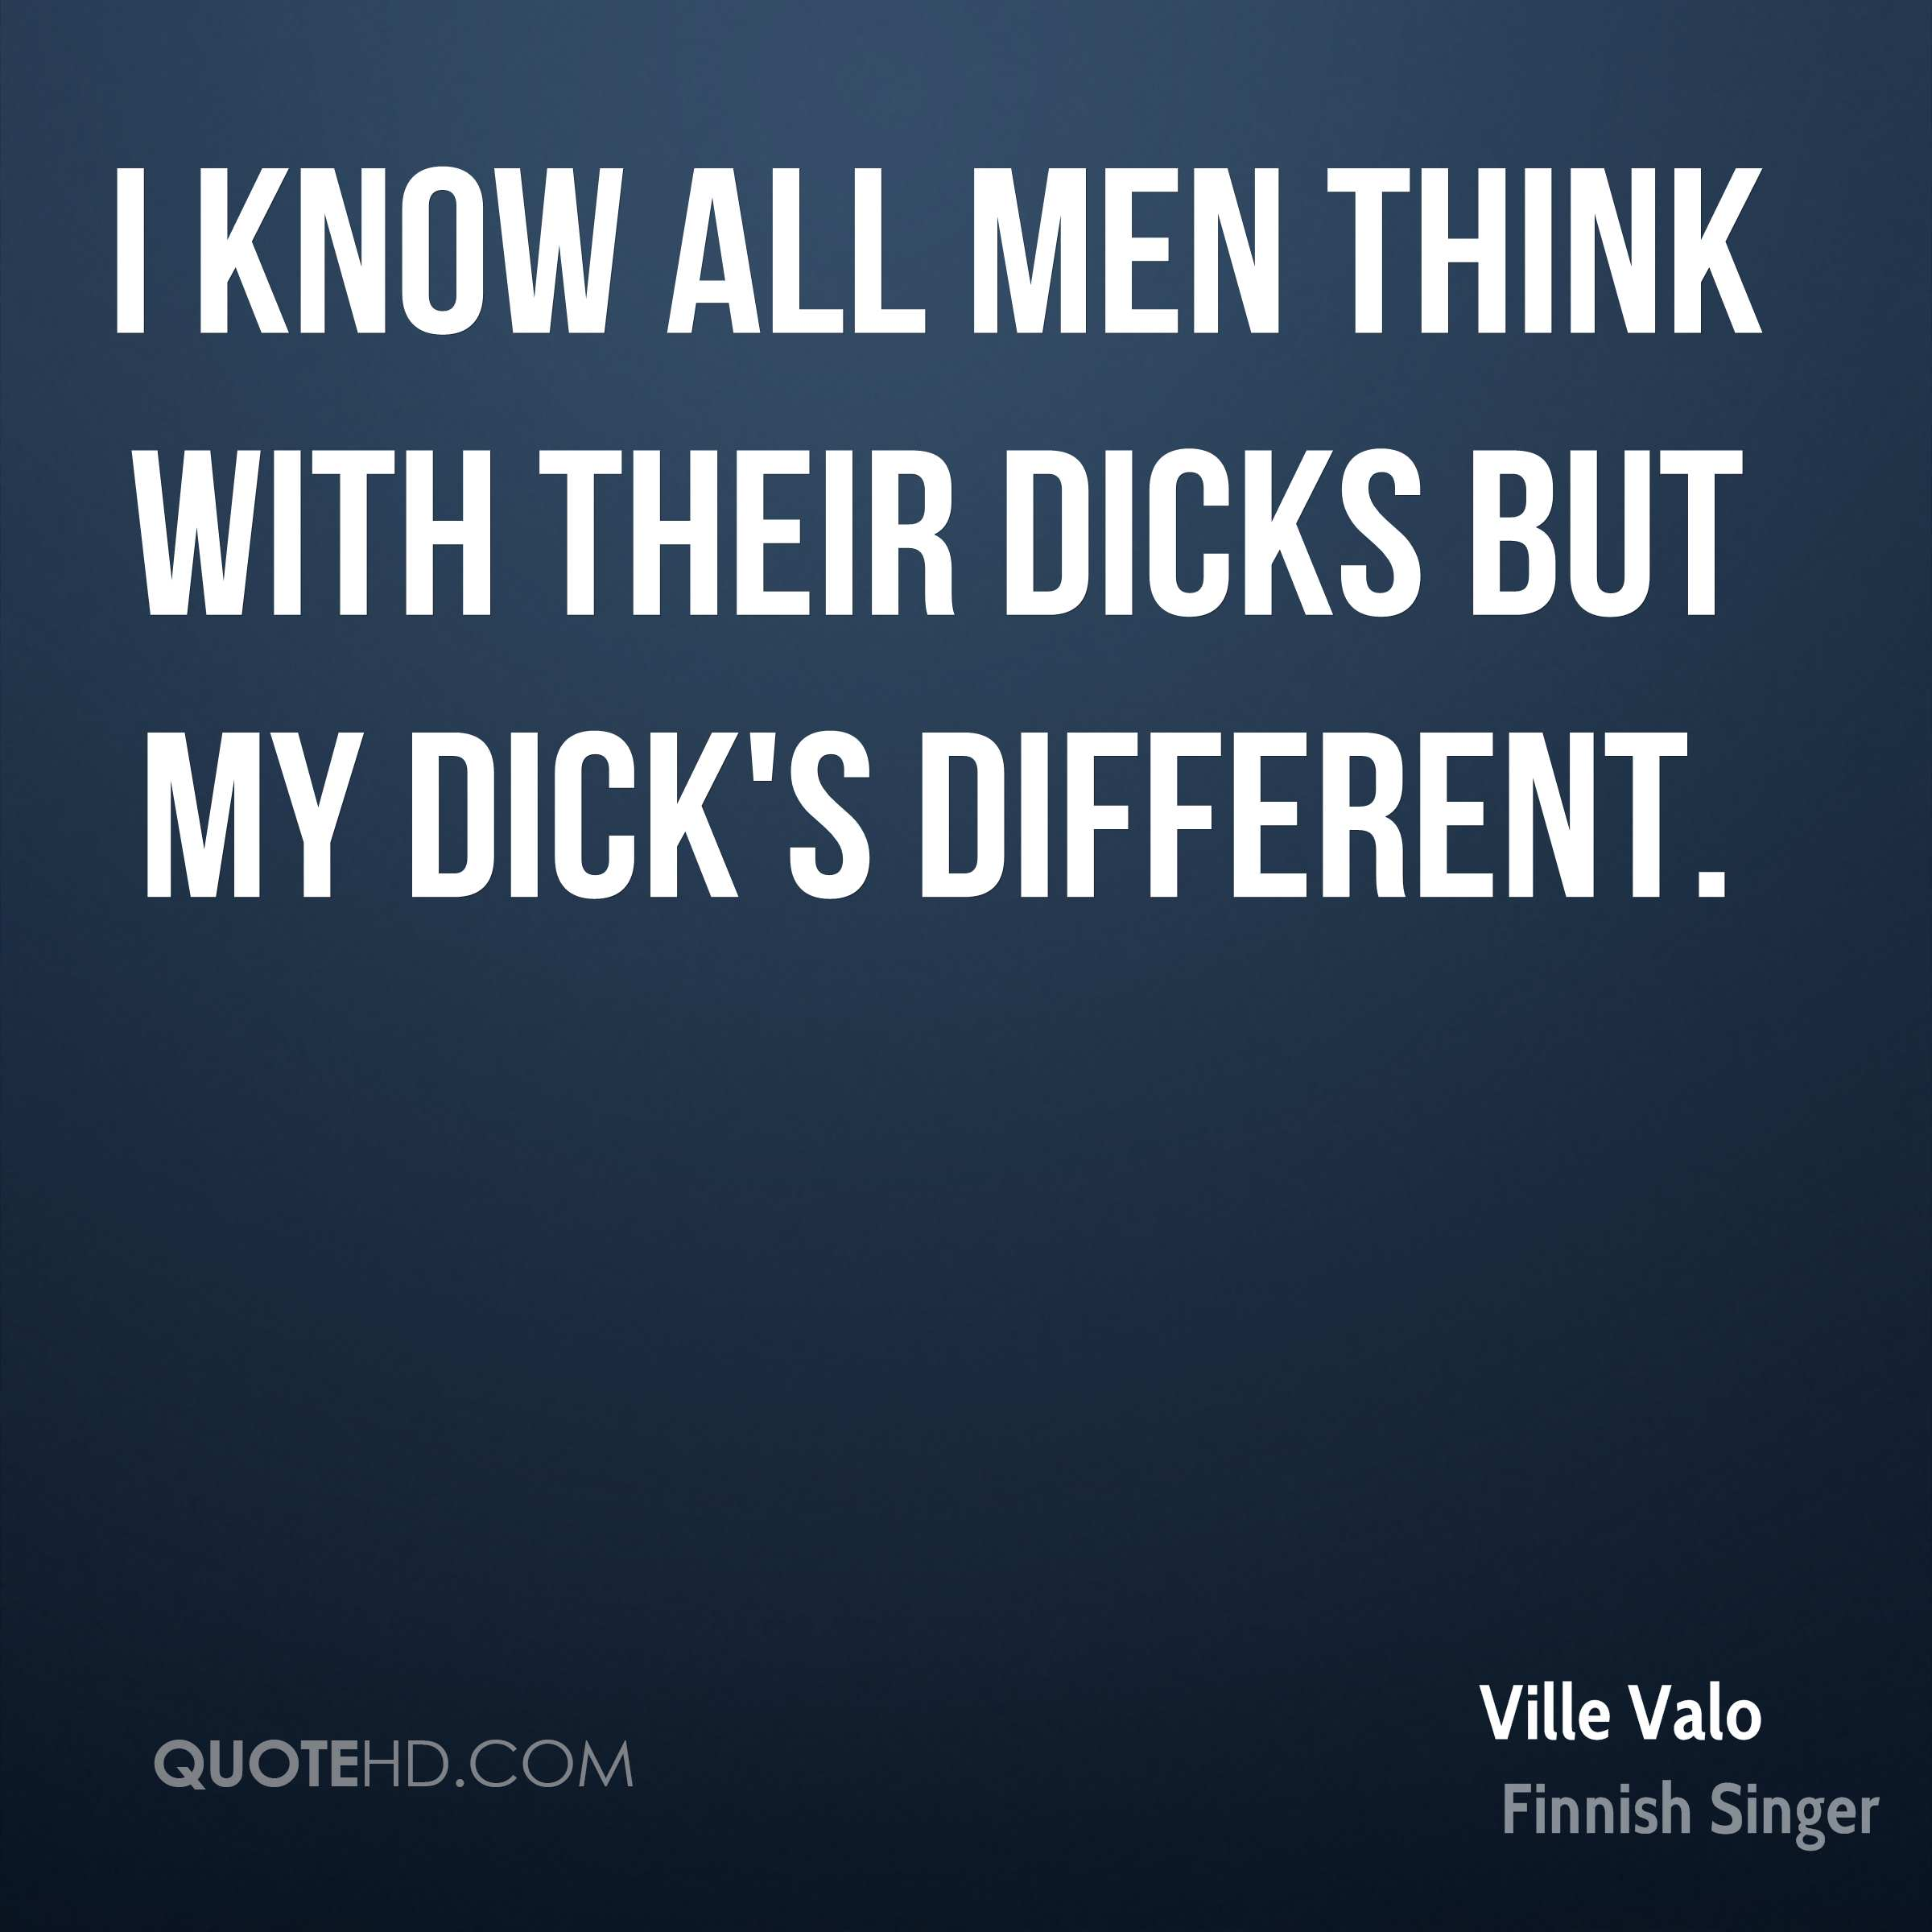 I know all men think with their dicks but my dick's different.